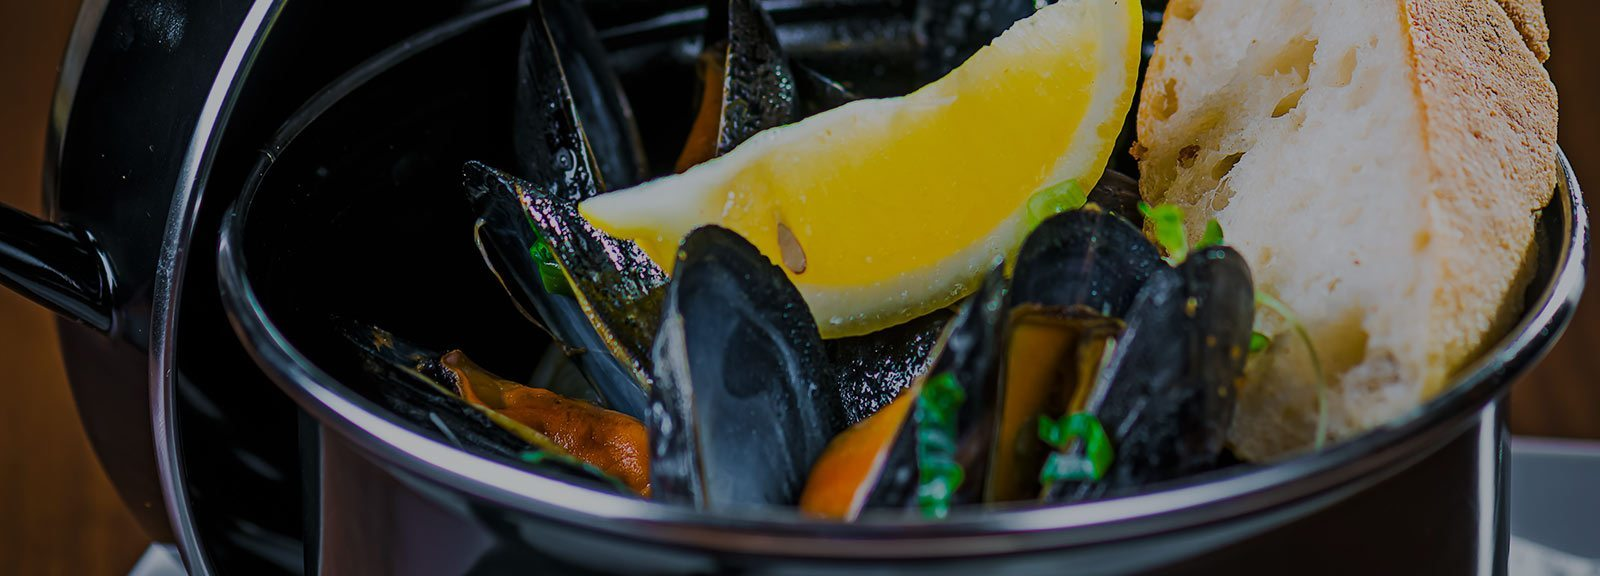 Mussels at the Steakhouse